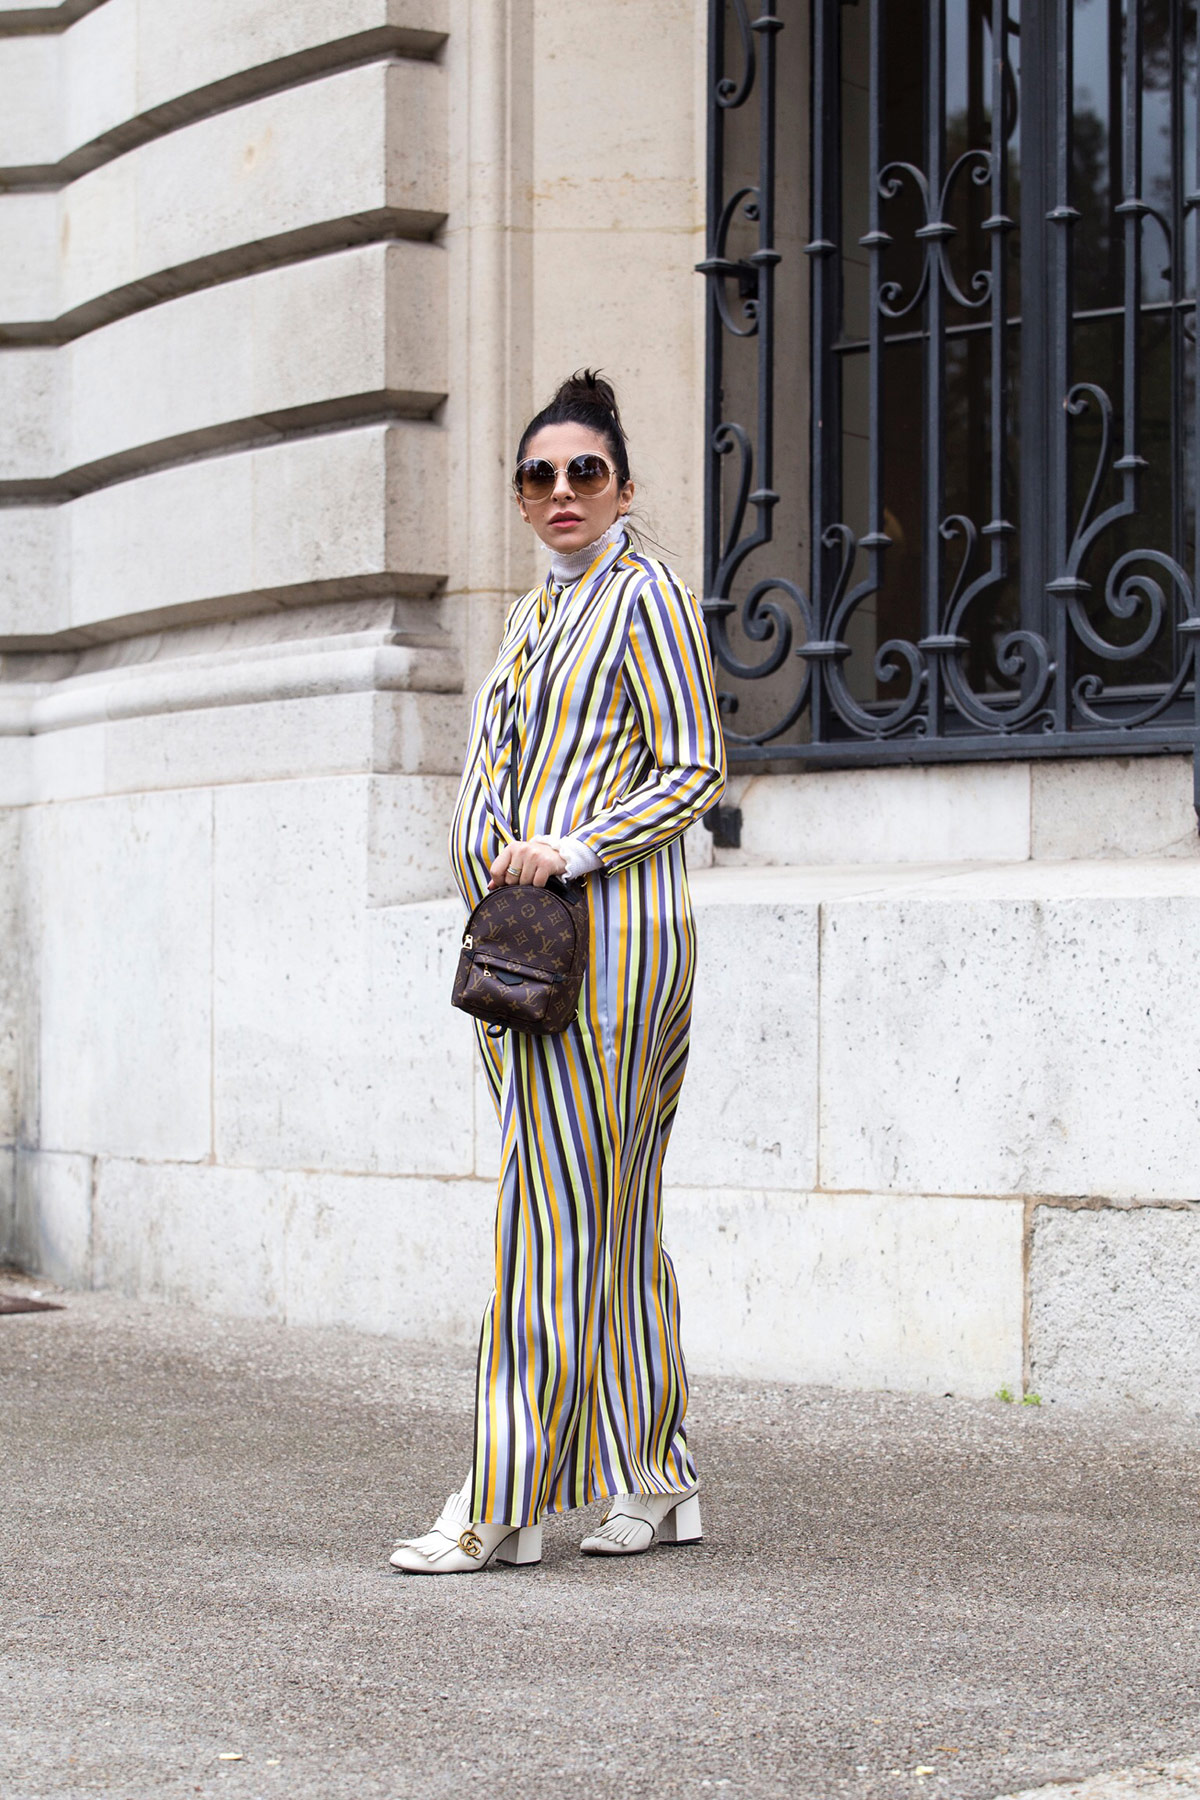 striped Acne dress worn with jeans, Gucci boots and Louis Vuitton Palm Springs backpack by Stella Asteria during Paris Fashion Week SS'18 - Paris Streetstyle and Street Fashion